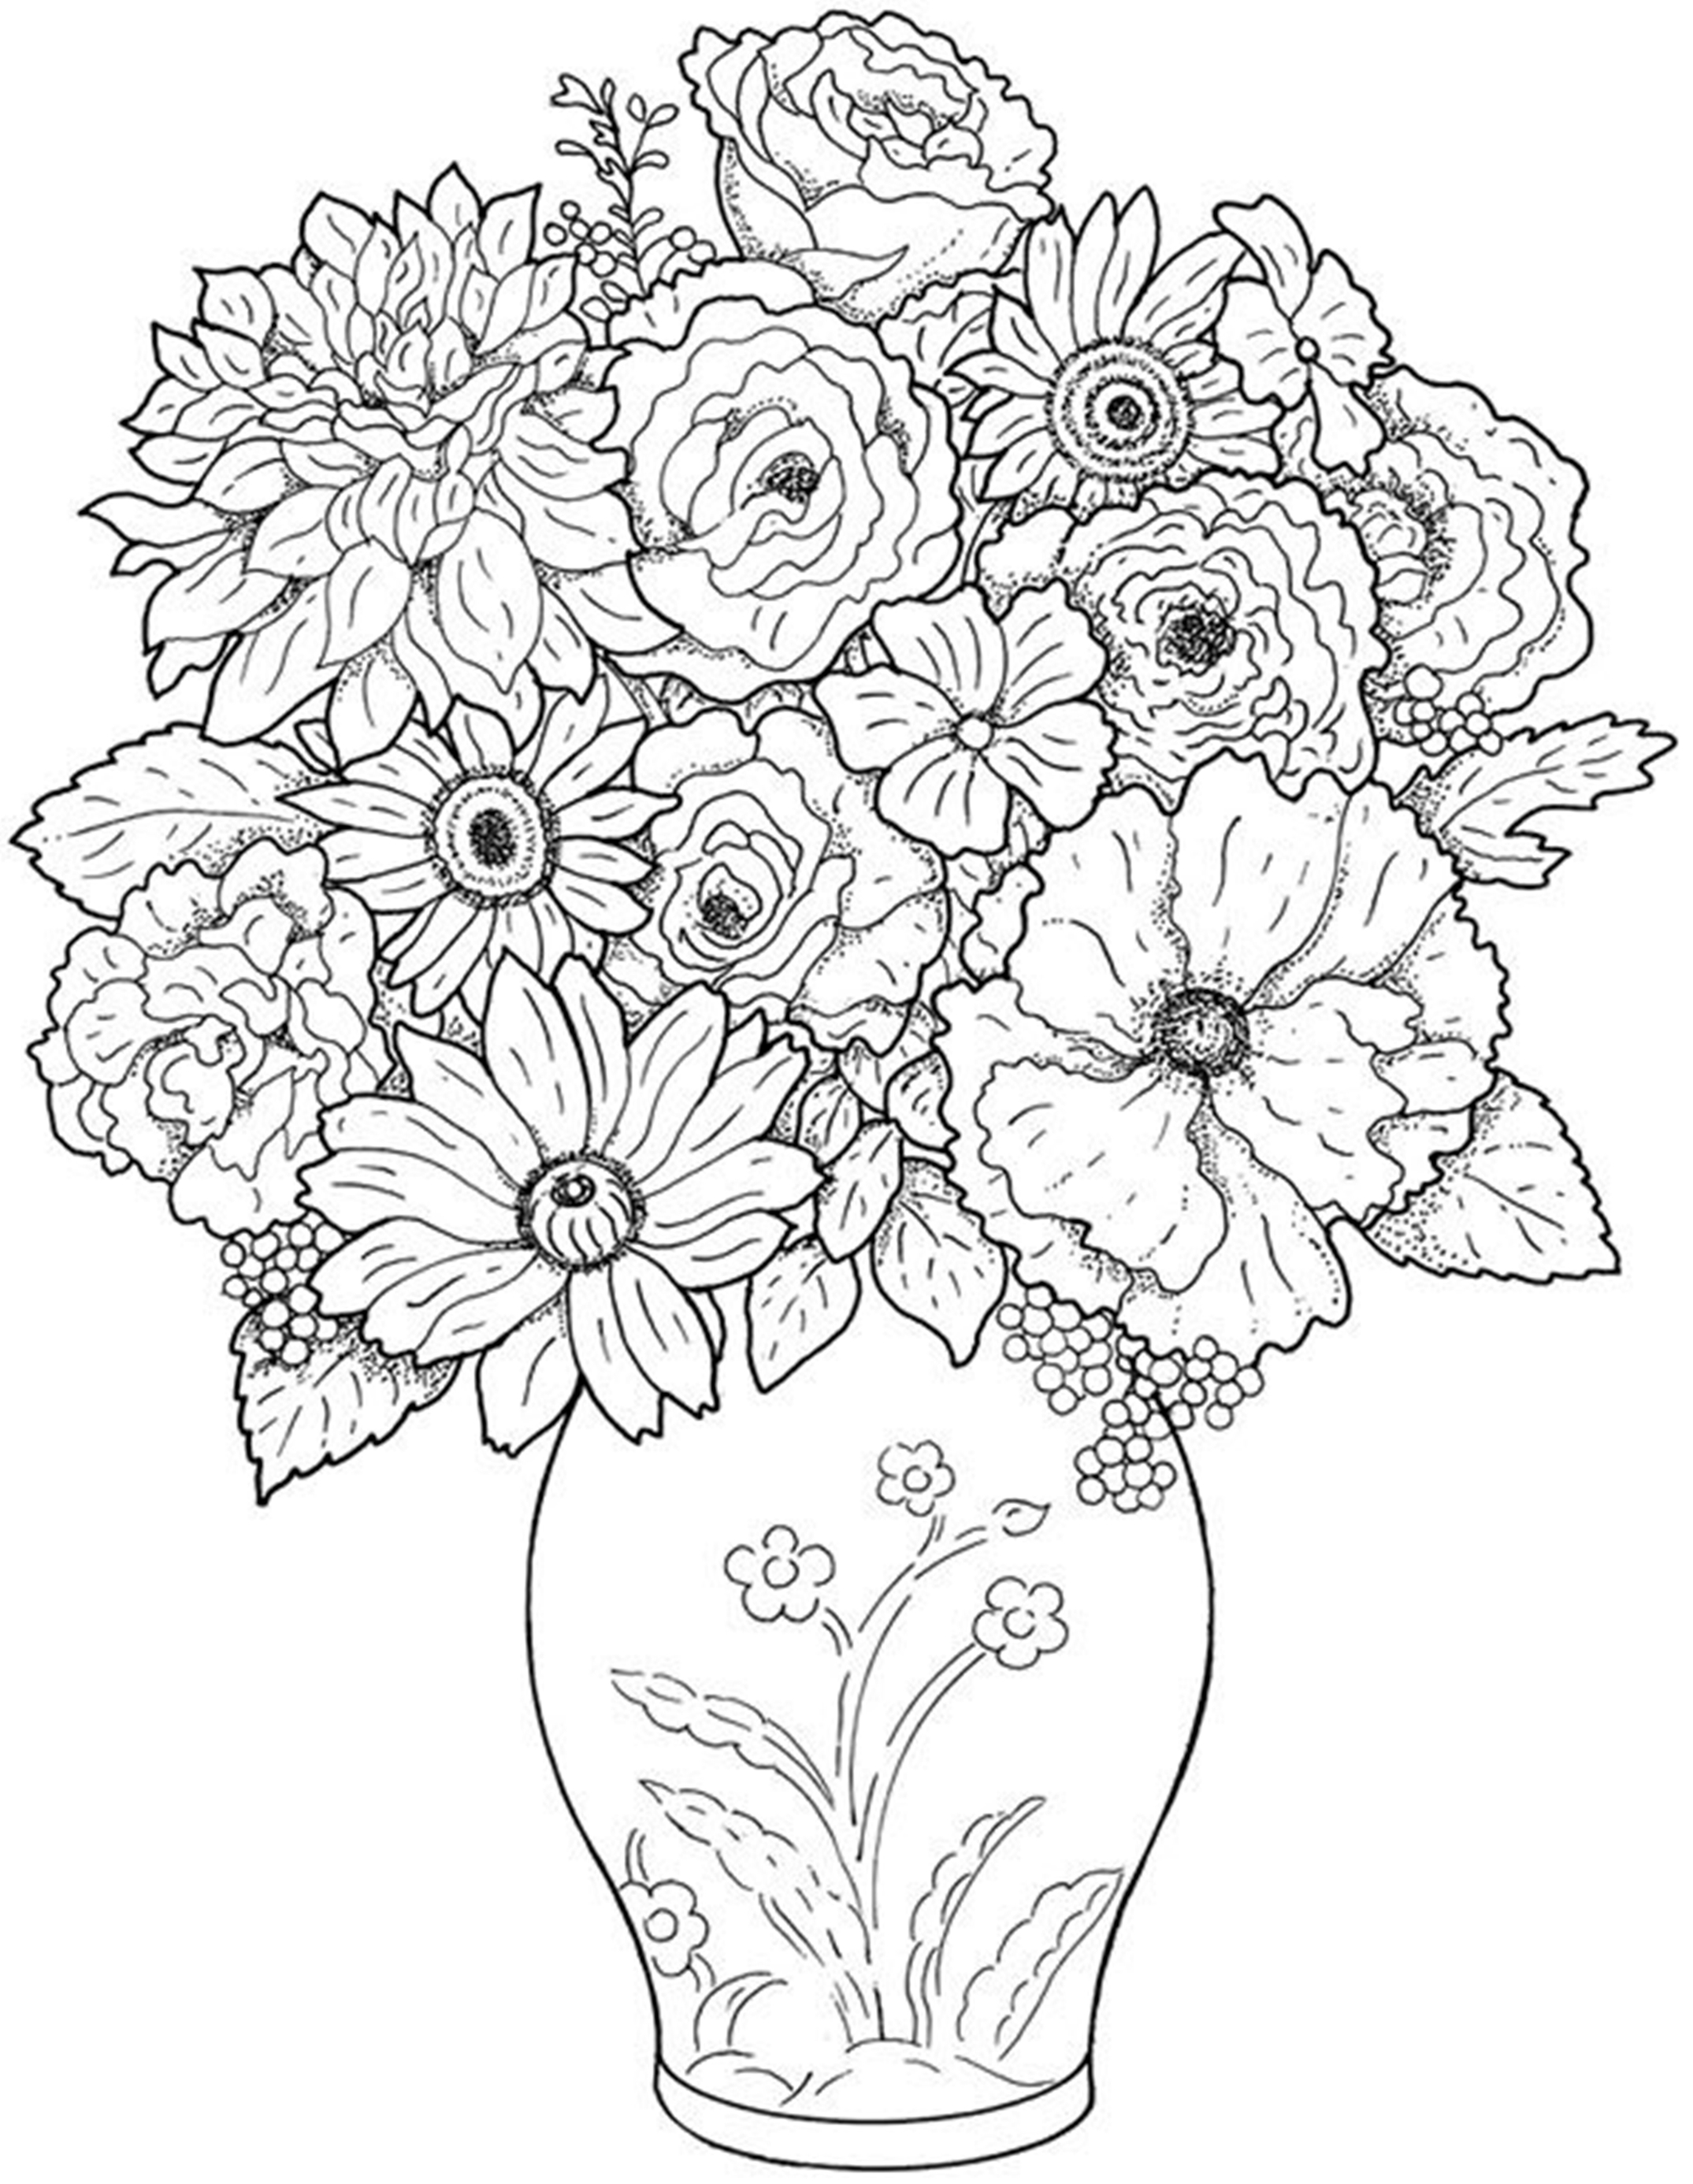 flower coloring sheets free free printable flower coloring pages for kids best free flower sheets coloring